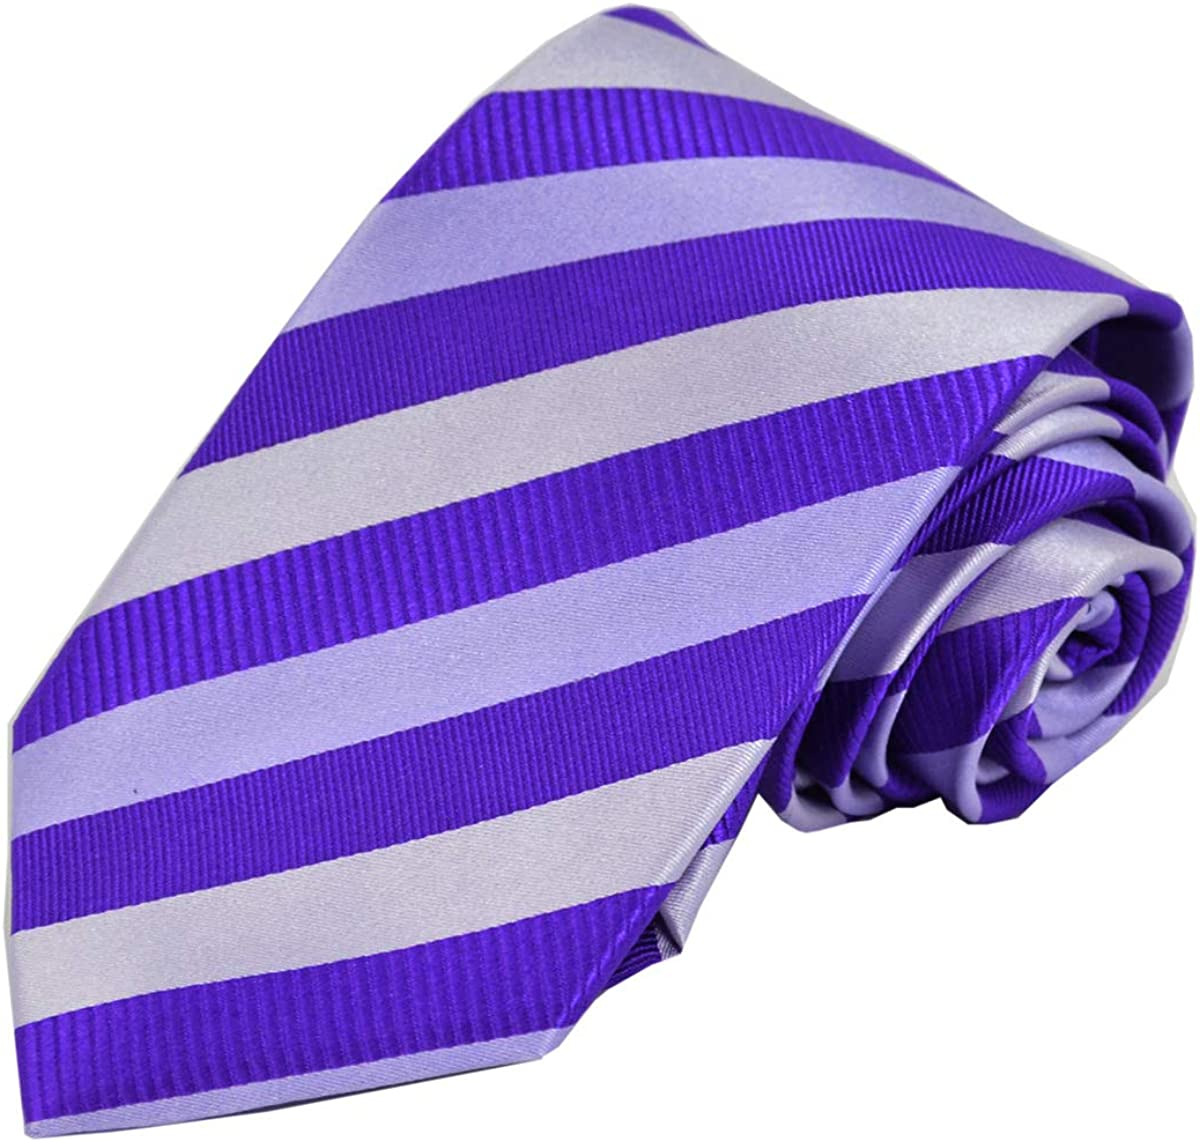 Violet Striped Silk Spring new work Tie Recommended with and Pocket Square Cufflinks